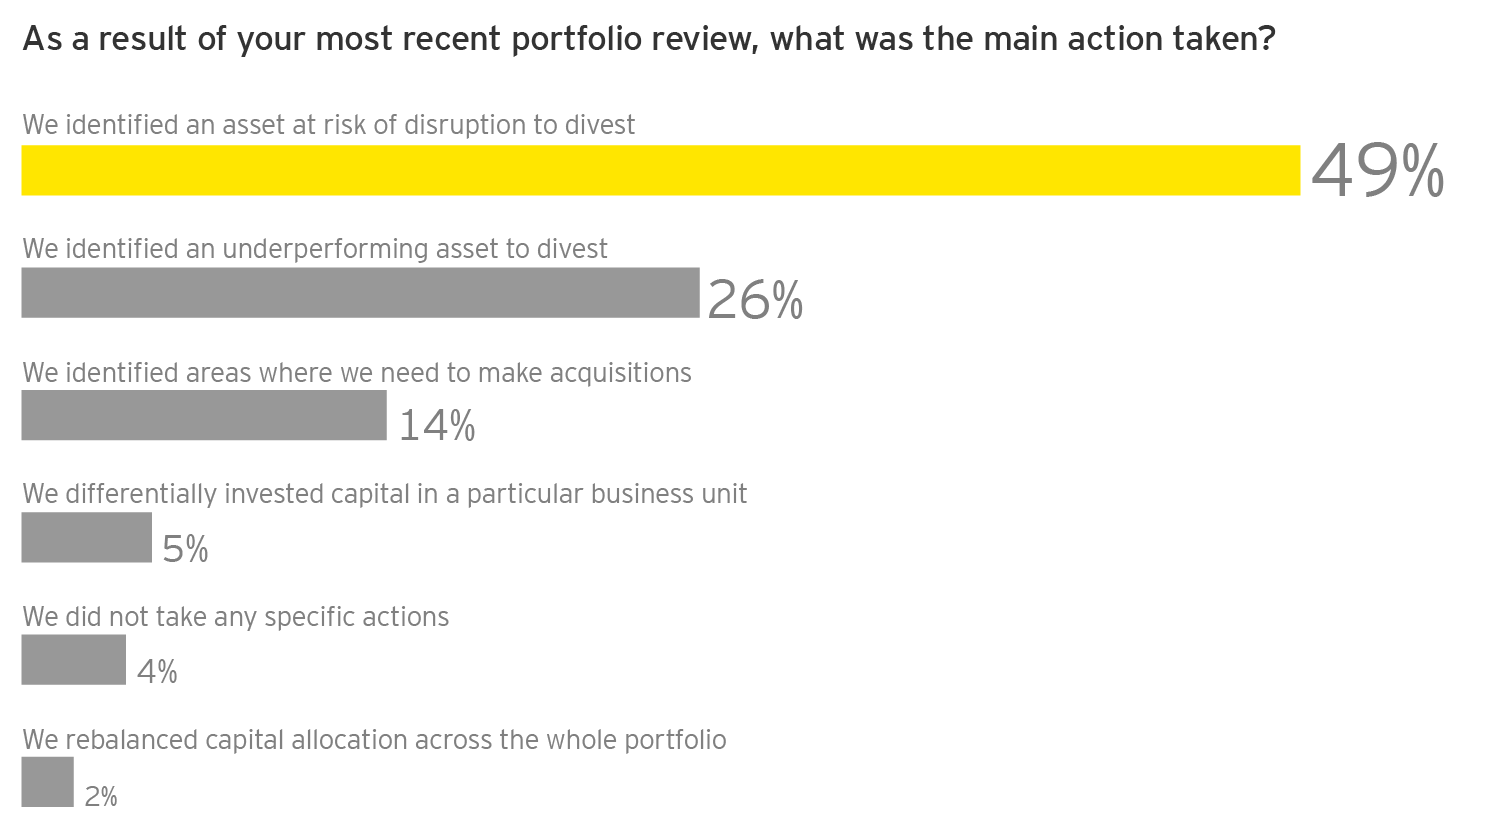 EY - Q: As a result of your most recent portfolio review, what was the main action taken?